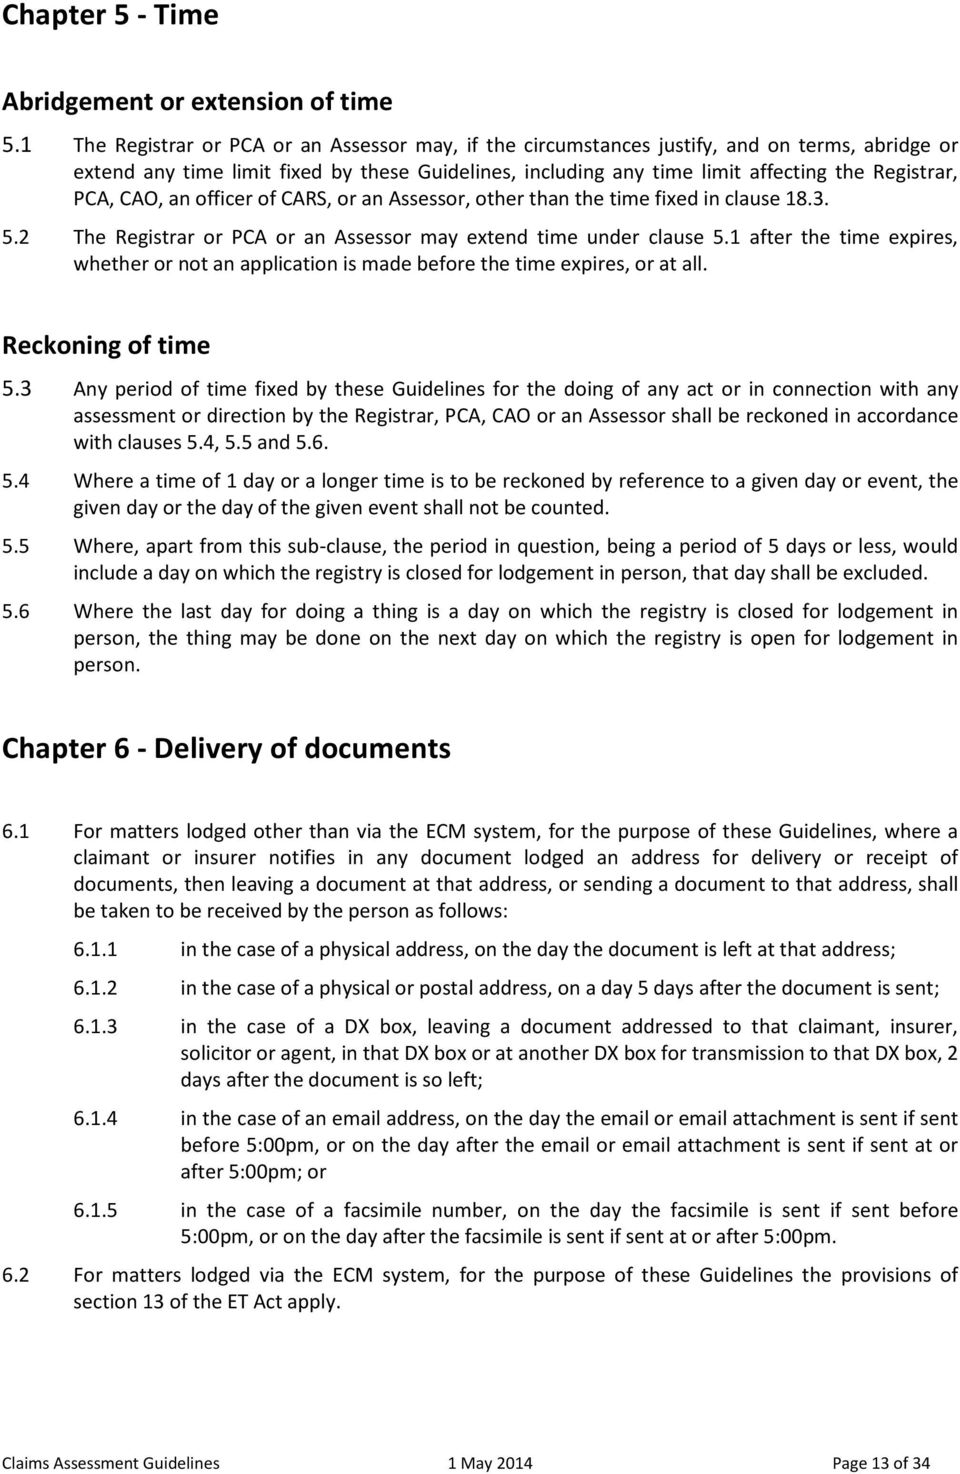 PCA, CAO, an officer of CARS, or an Assessor, other than the time fixed in clause 18.3. 5.2 The Registrar or PCA or an Assessor may extend time under clause 5.